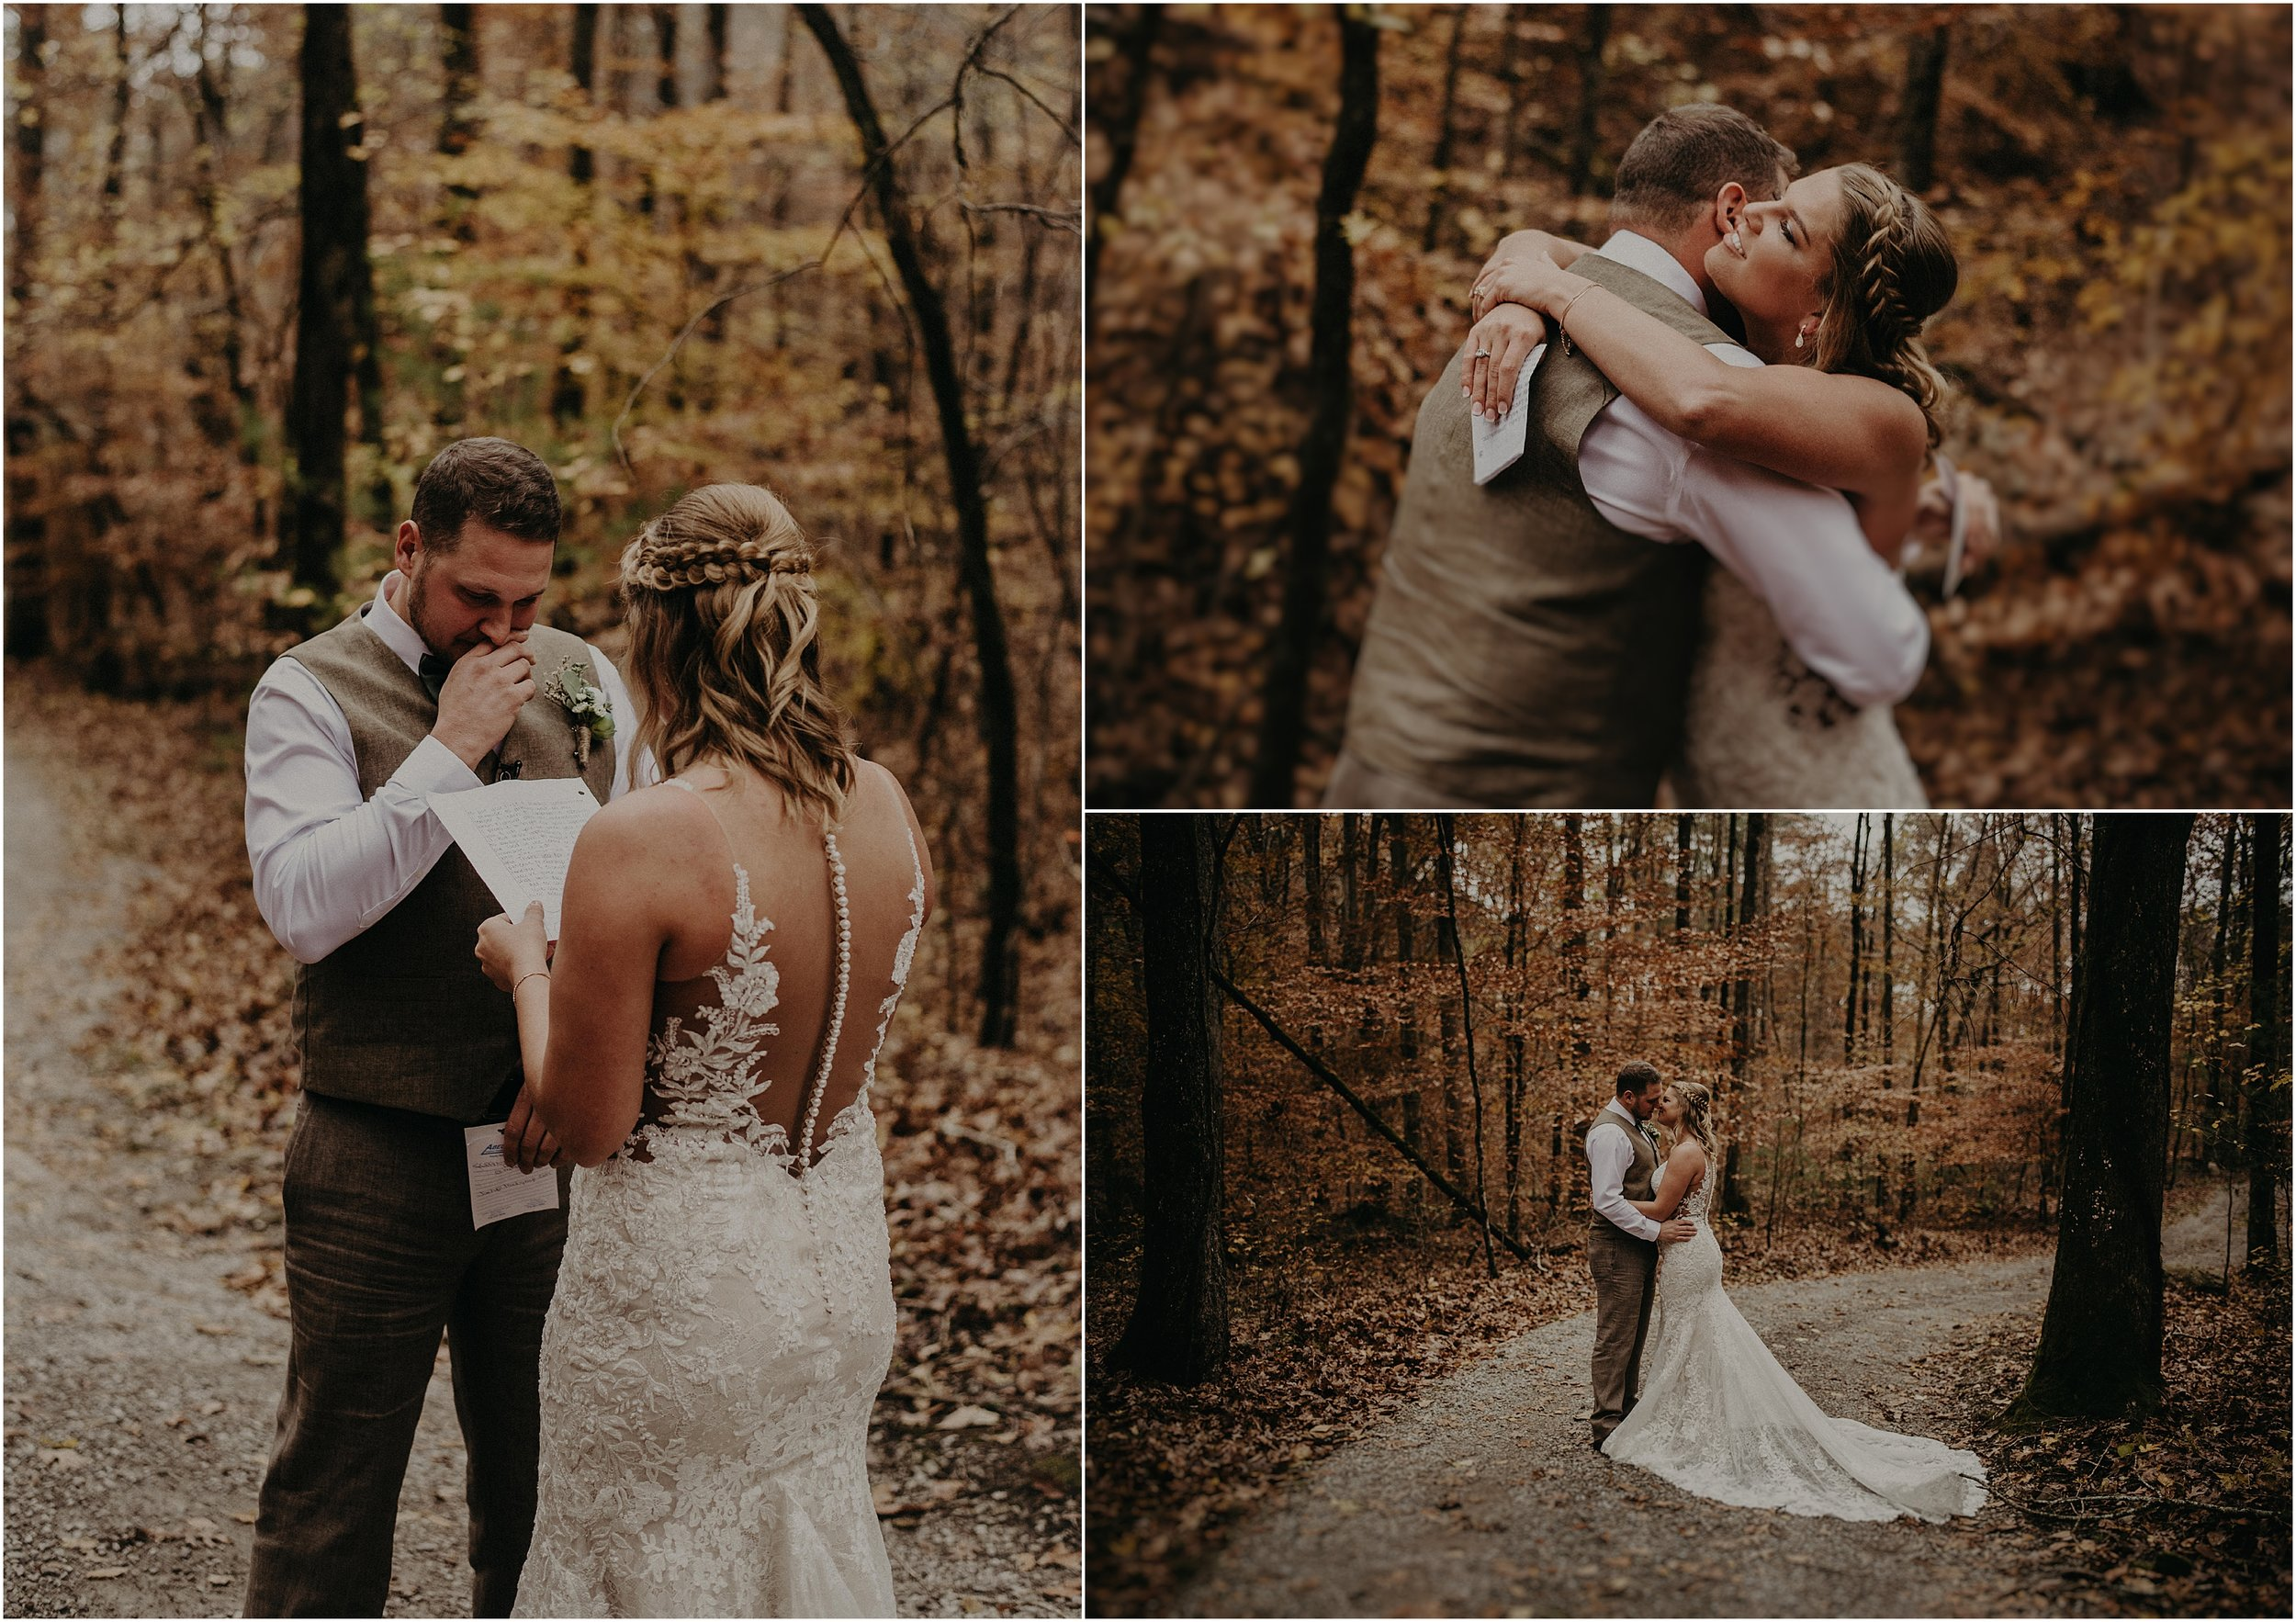 A fall first look at this wedding near the Ocoee River in Tennessee